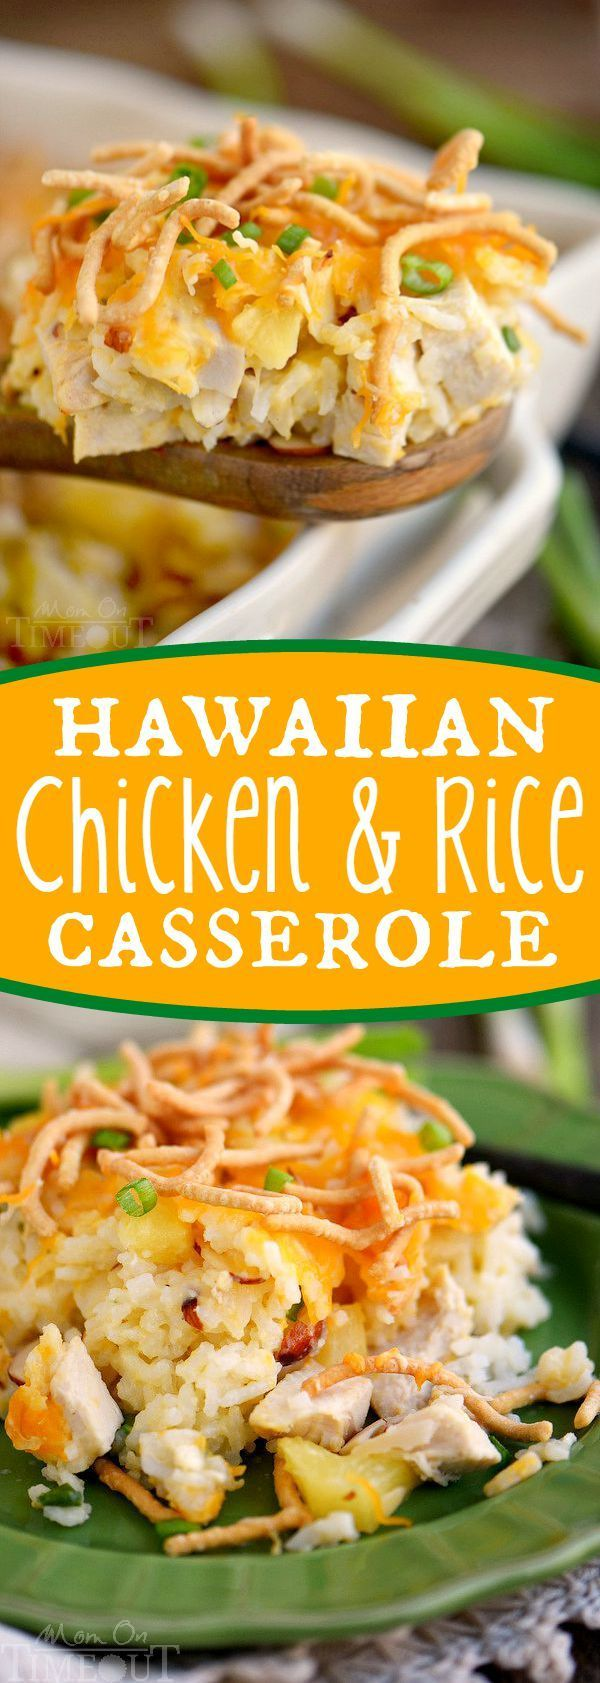 designer clothes online shopping Get ready for a new favorite recipe   Hawaiian Chicken and Rice Casserole  An easy weeknight dinner that uses ingredients you probably already have in your pantry